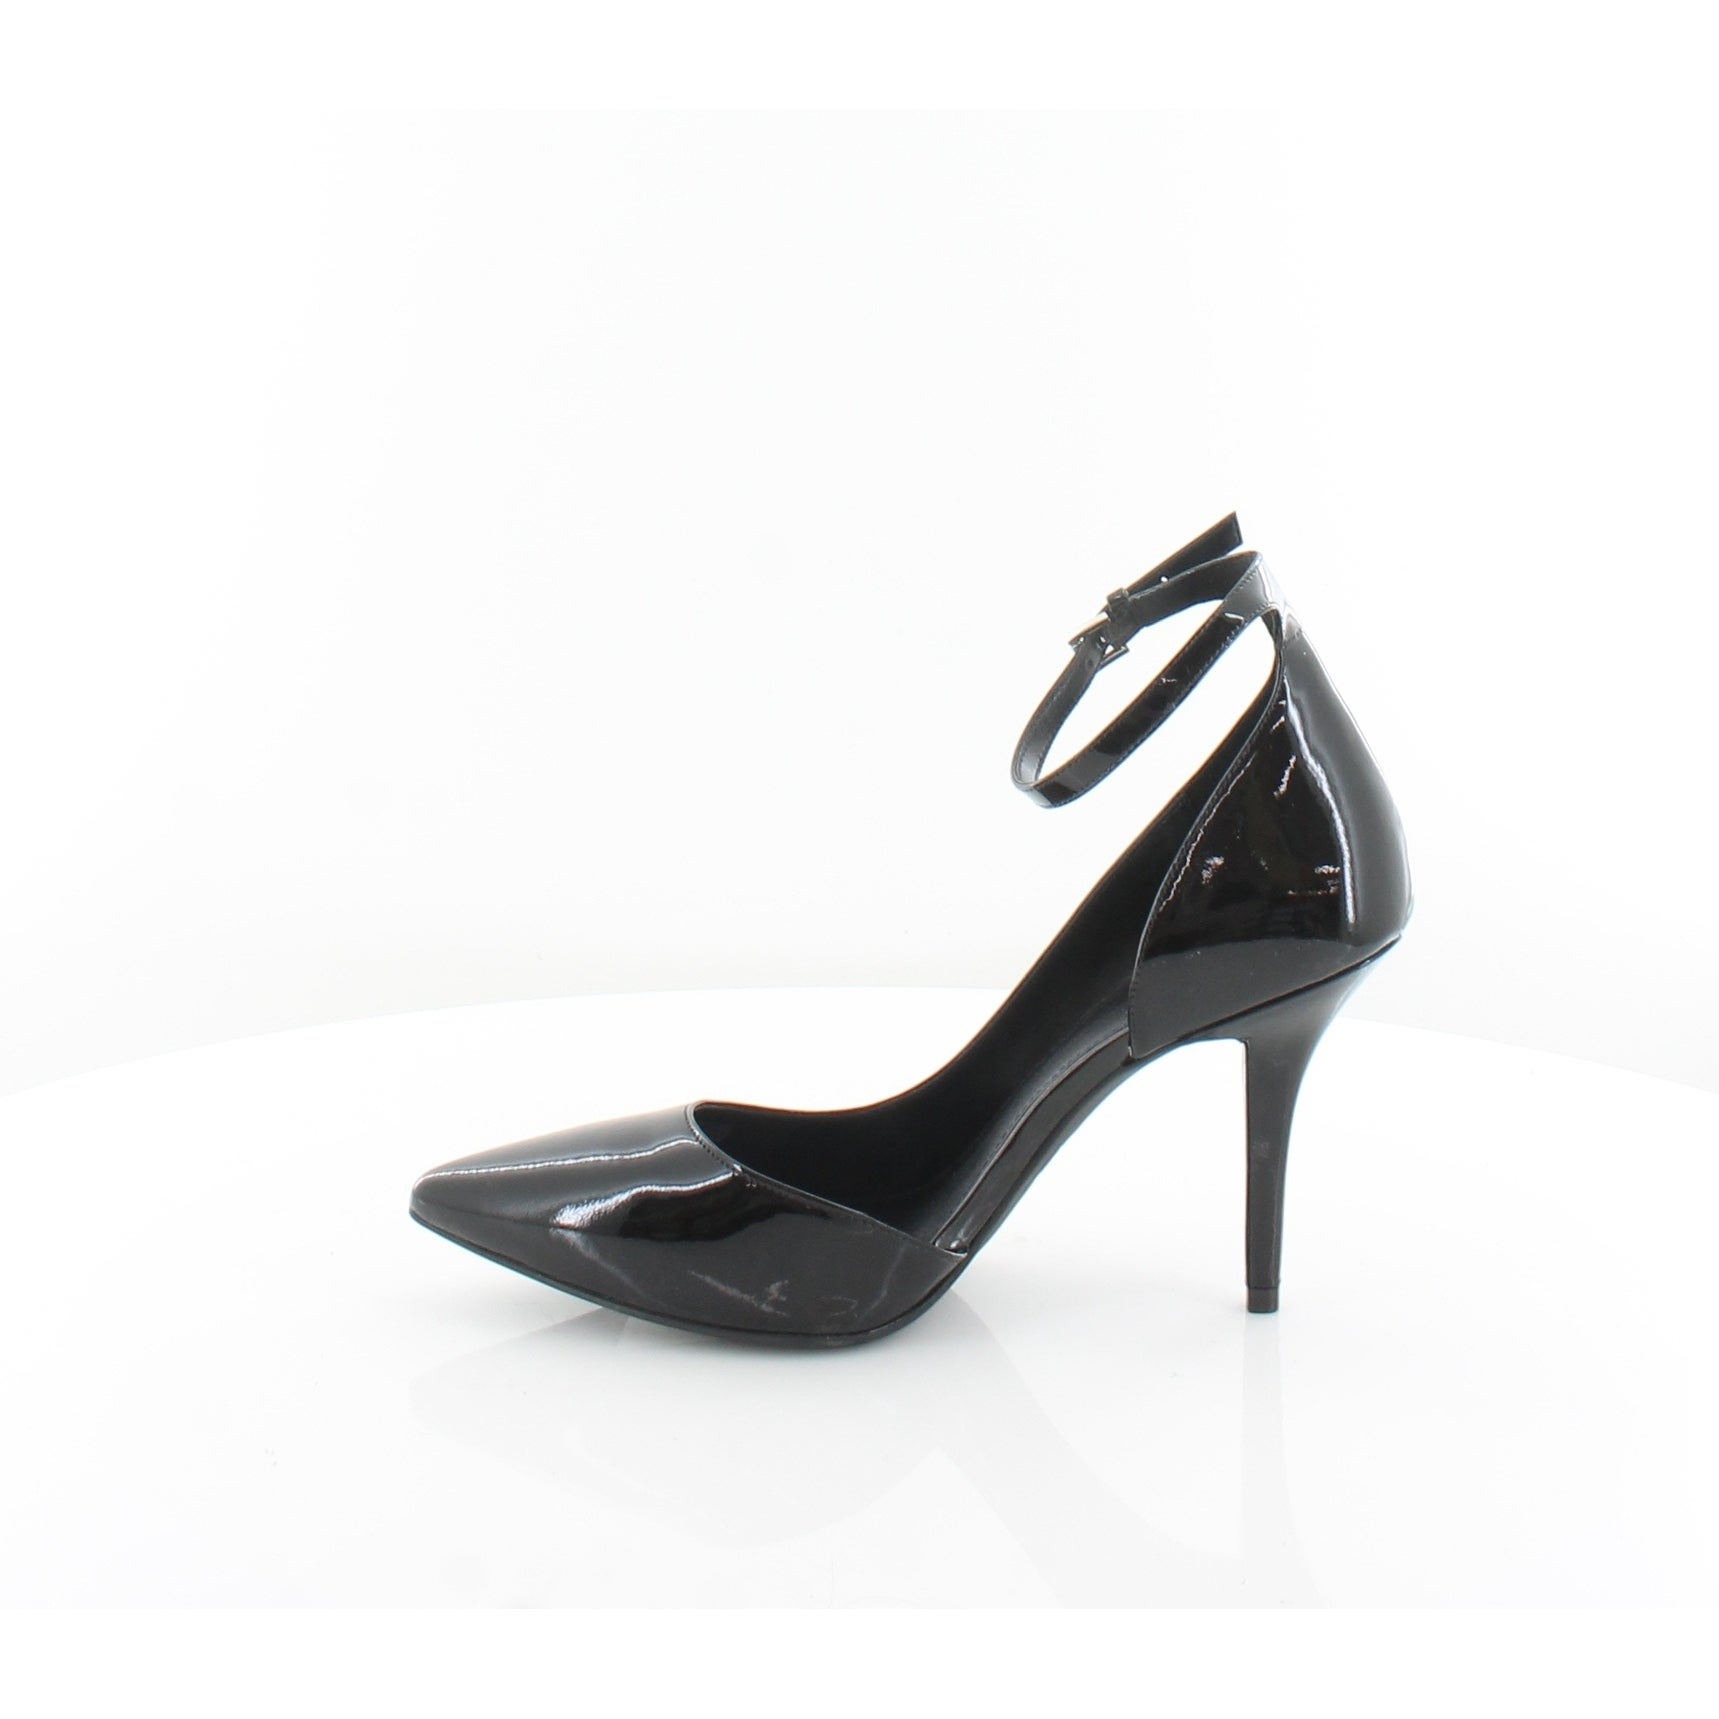 64150266244c Shop Michael Kors Abbi Flex Ankle Stra Women s Heels Black - Free Shipping  Today - Overstock - 25621195